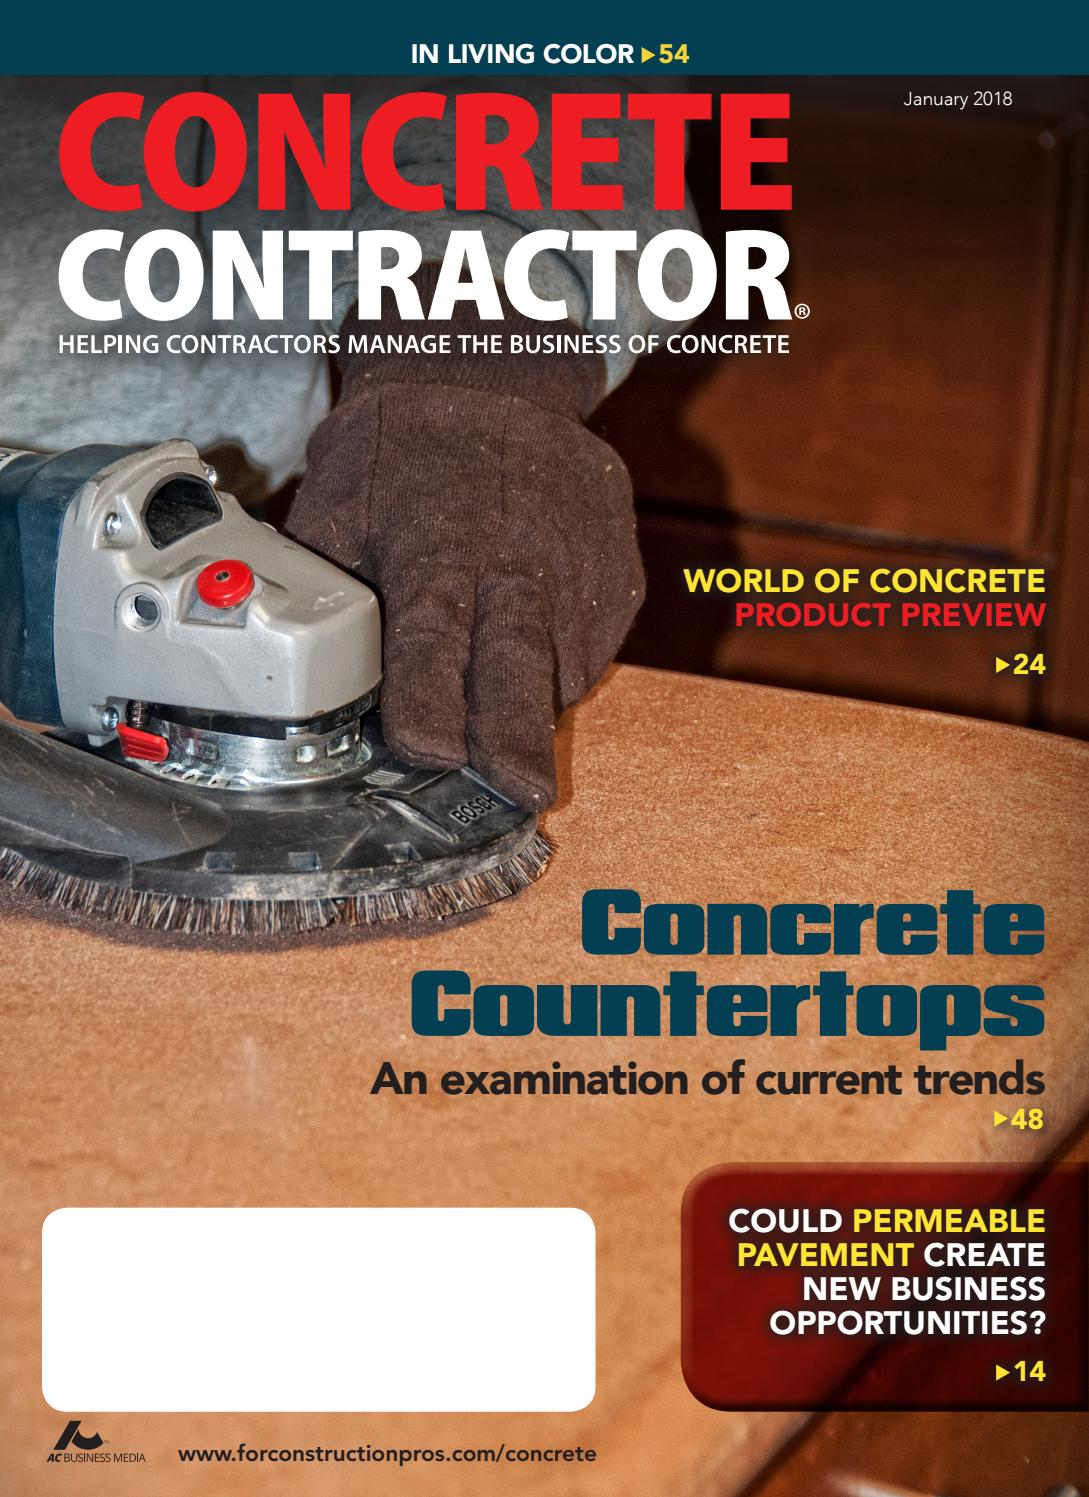 Concrete Contractor January 2018